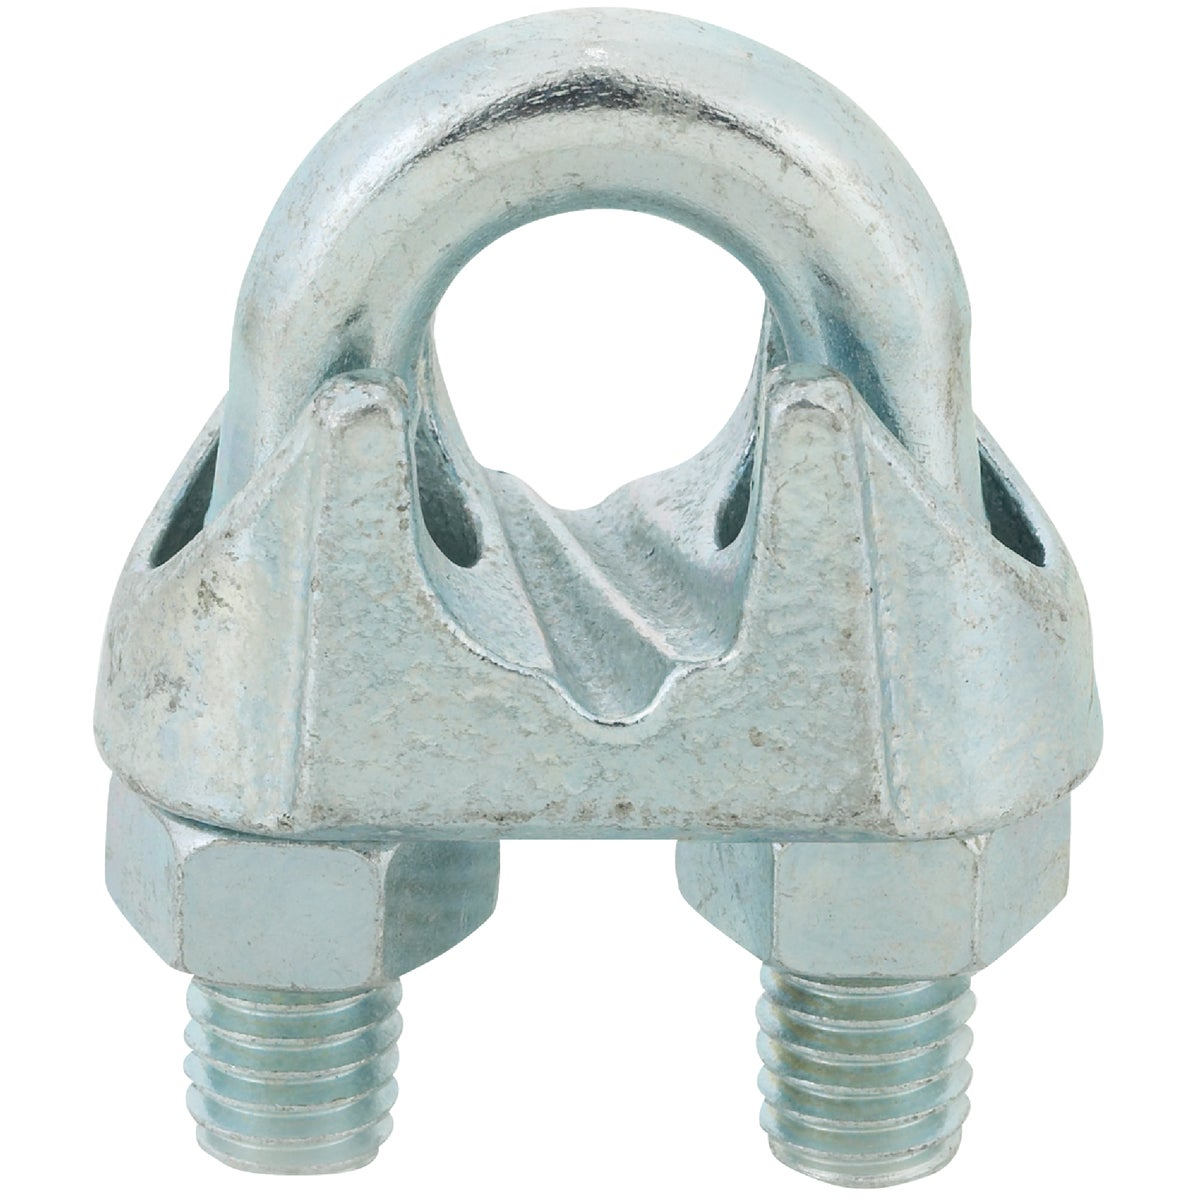 "1/2"" WIRE ROPE CLAMP - T7670479 by Cooper Campbell Apex"